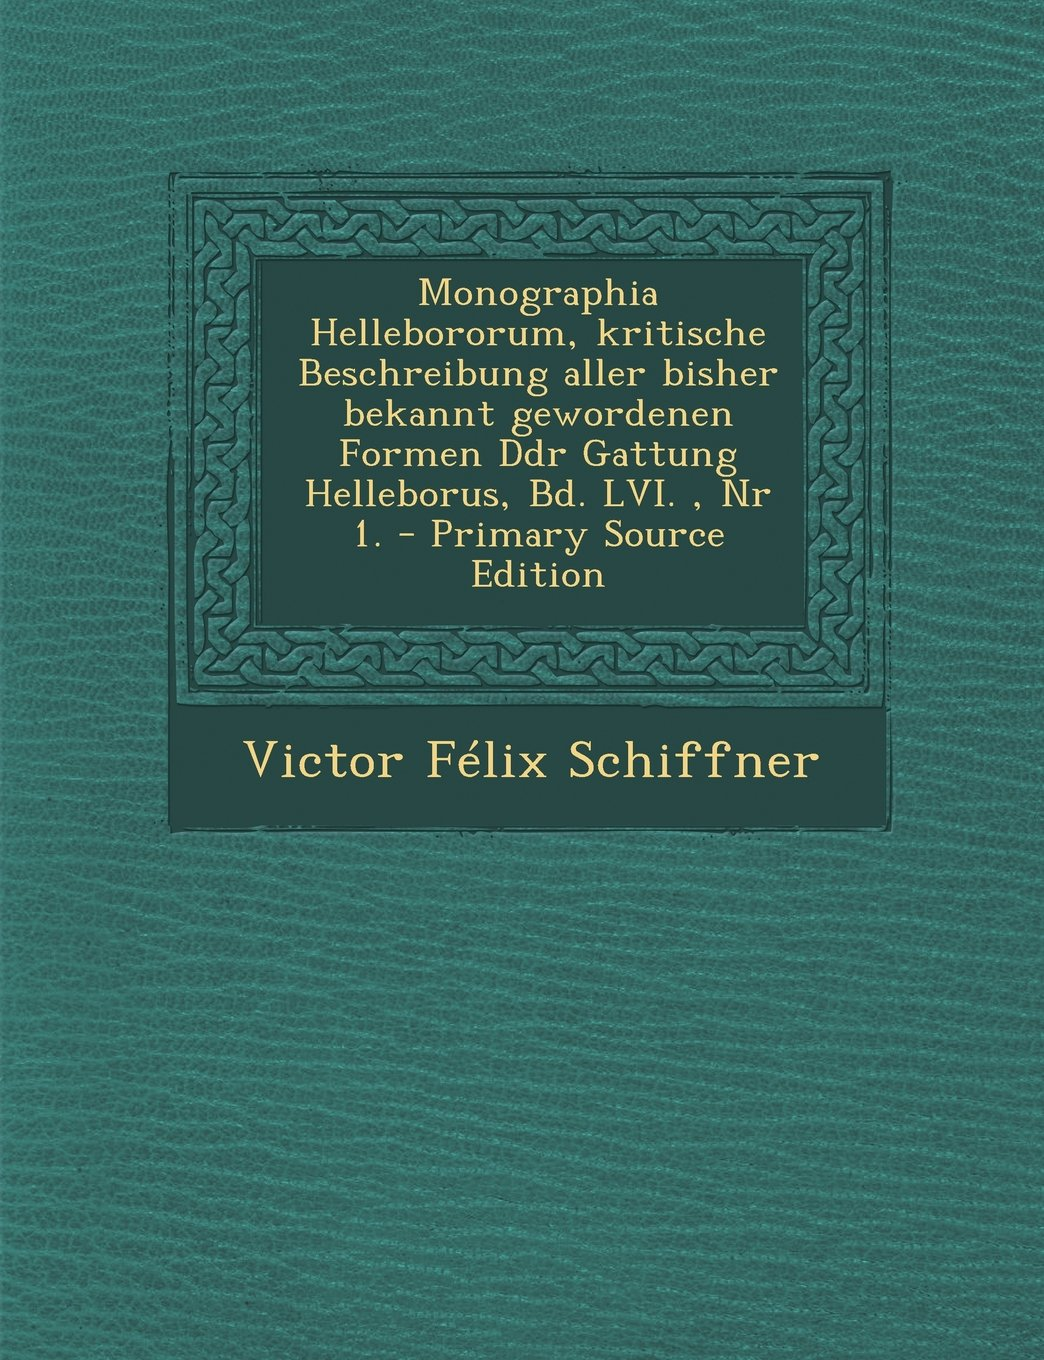 Read Online Monographia Hellebororum, Kritische Beschreibung Aller Bisher Bekannt Gewordenen Formen Ddr Gattung Helleborus, Bd. LVI., NR 1. - Primary Source Editi (German Edition) pdf epub